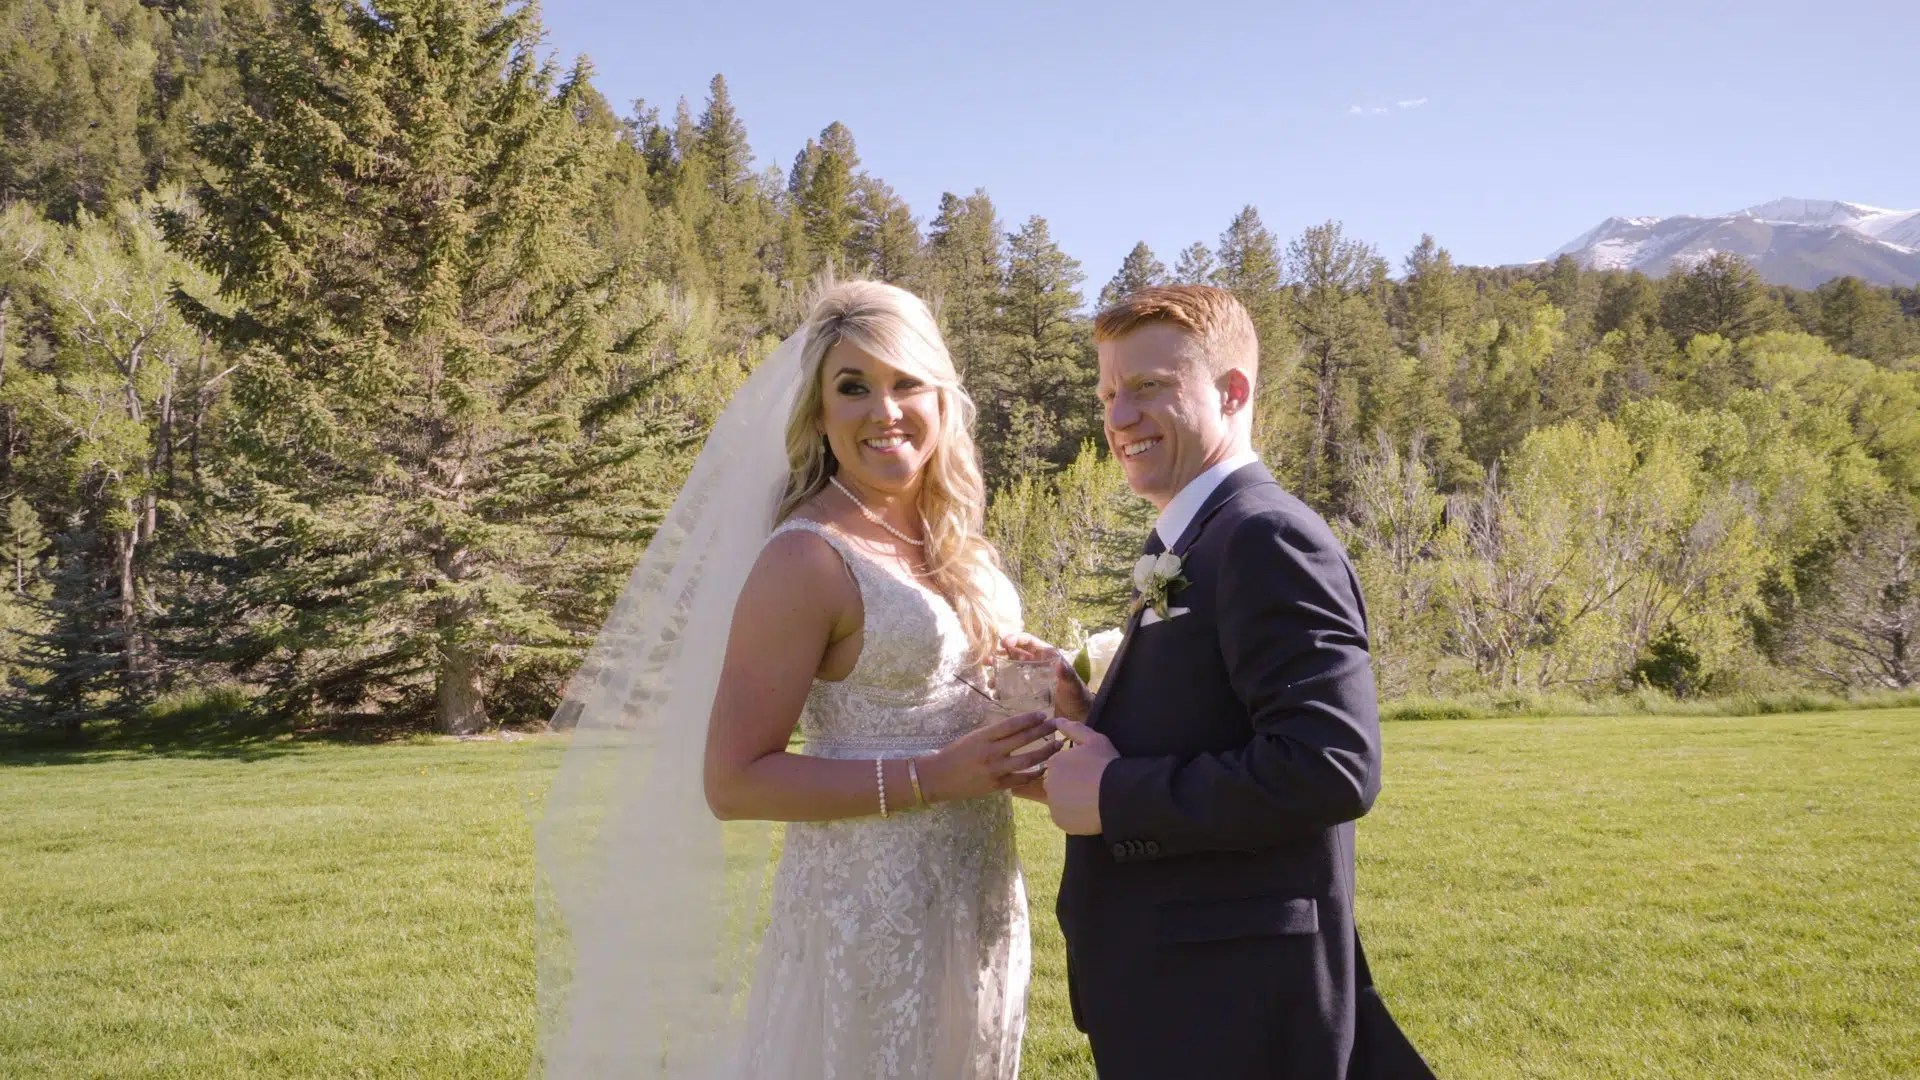 Cameron & Gennavieve's Wedding at Mt Princeton Hot Springs Resort